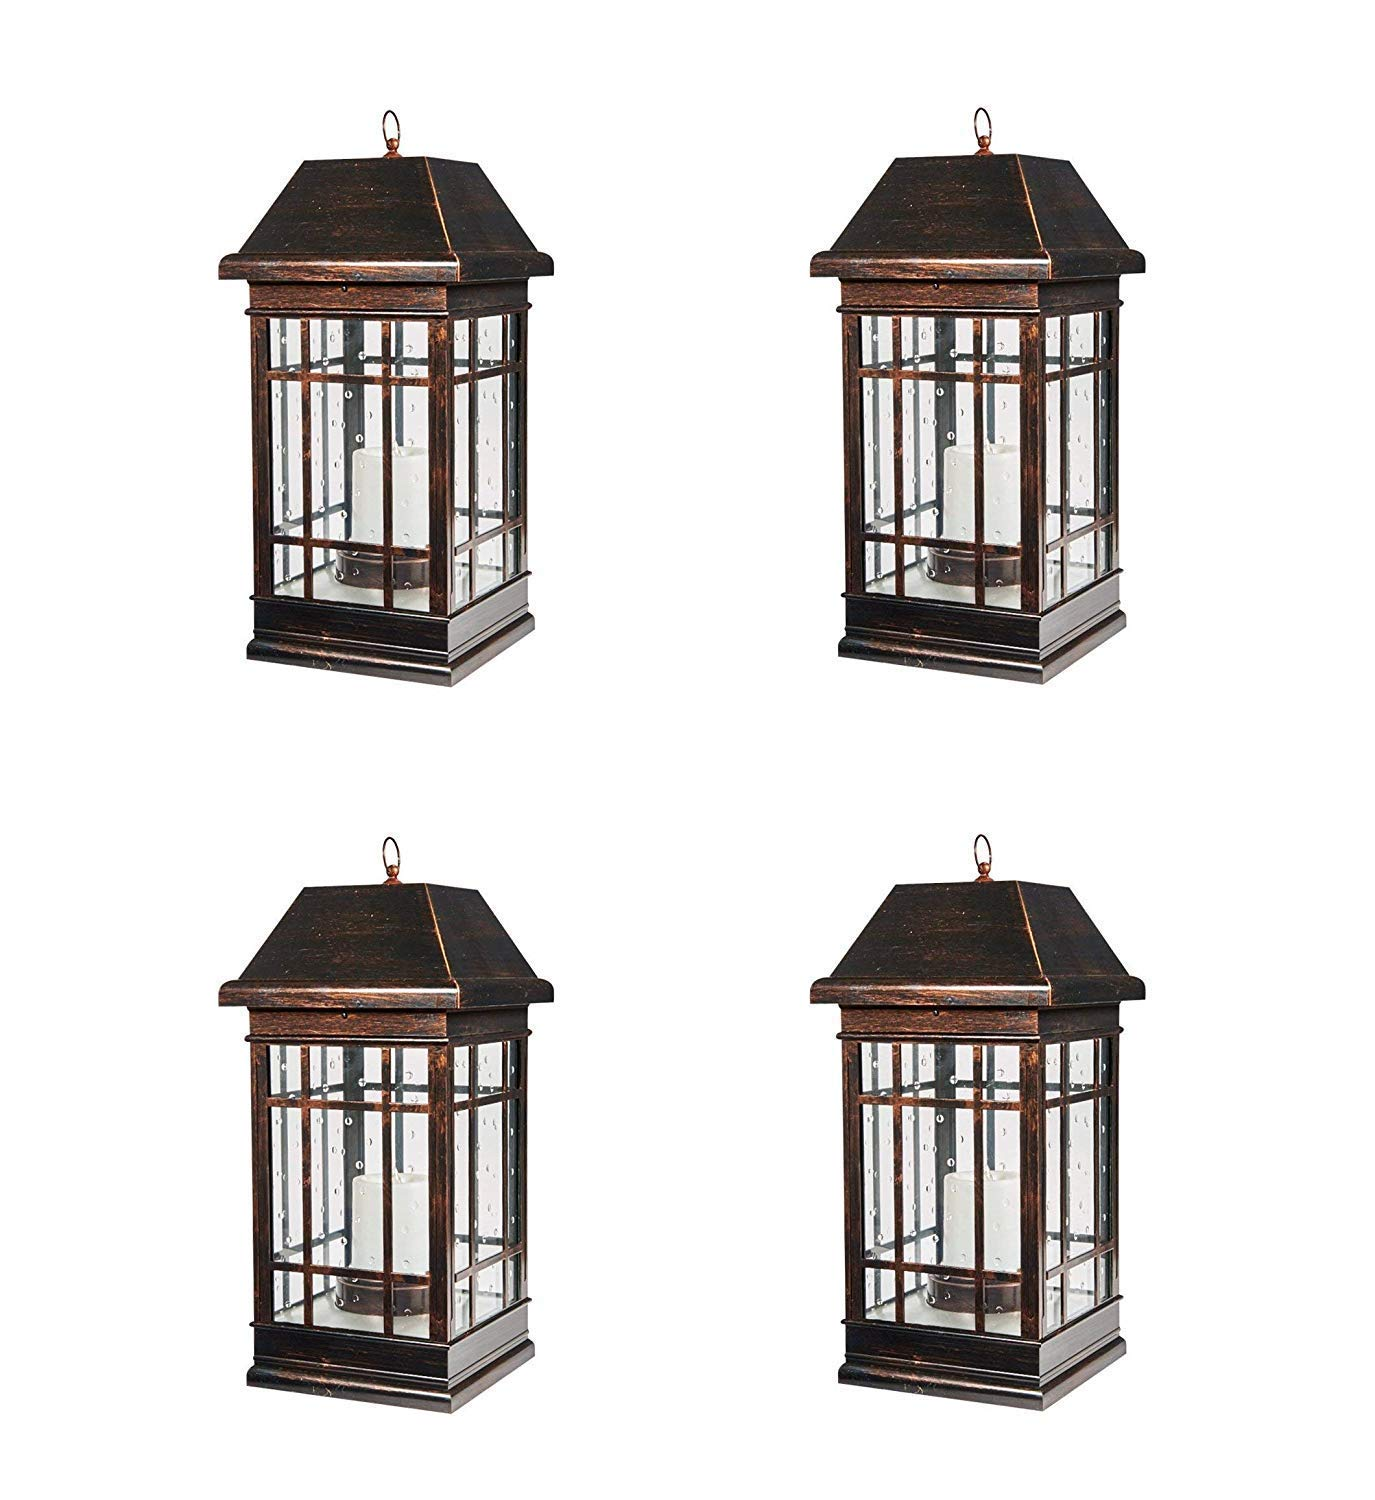 Smart Solar 3900KR1 San Rafael Mission Style Solar Lantern, Lantern is Illuminated by 2 High Performance Warm White LEDs in The Top, 22-Inch, Antique-Bronze (Pack of 4)